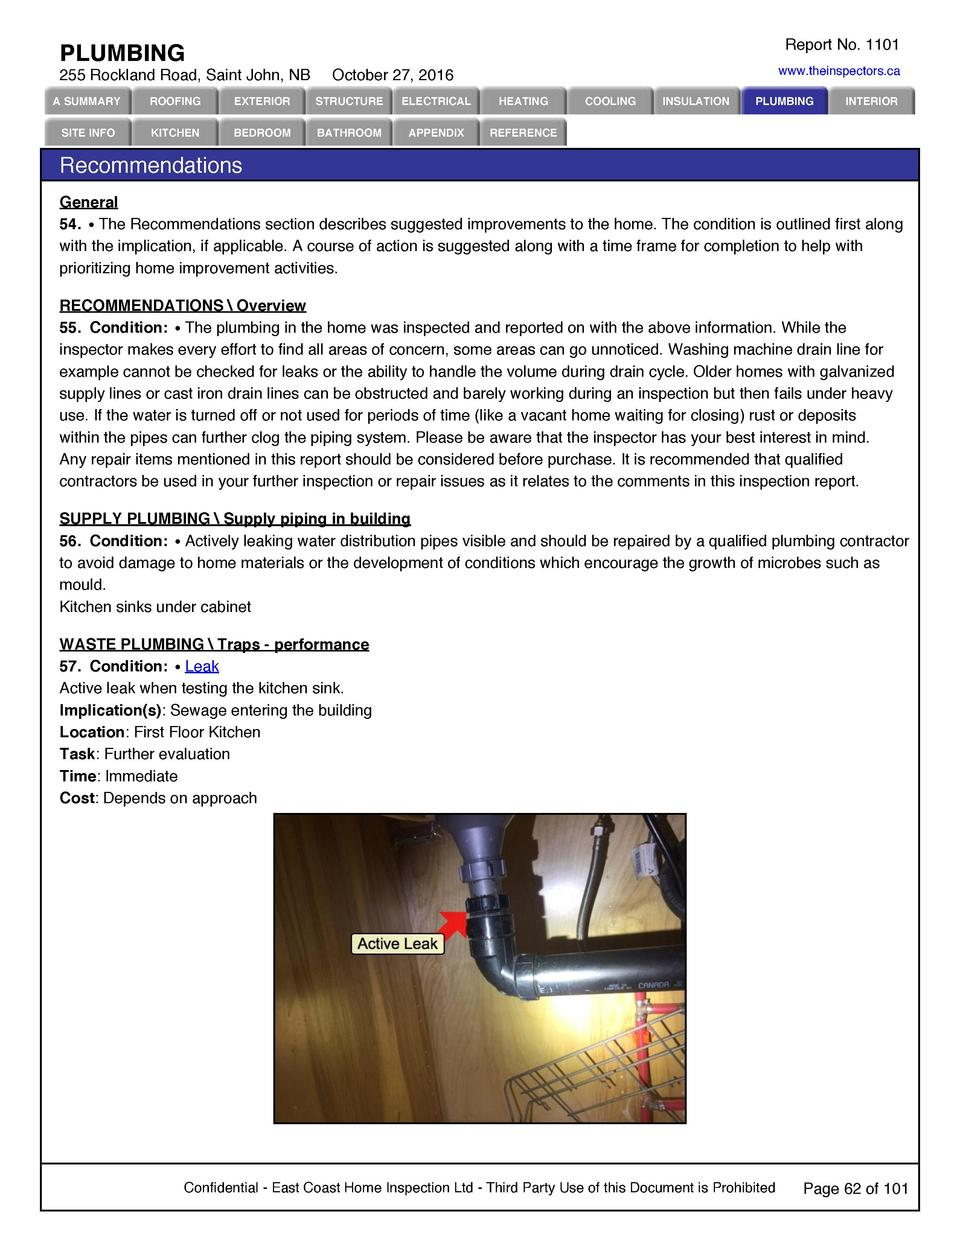 Report No. 1101  PLUMBING 255 Rockland Road, Saint John, NB  www.theinspectors.ca  October 27, 2016  A SUMMARY  ROOFING  E...